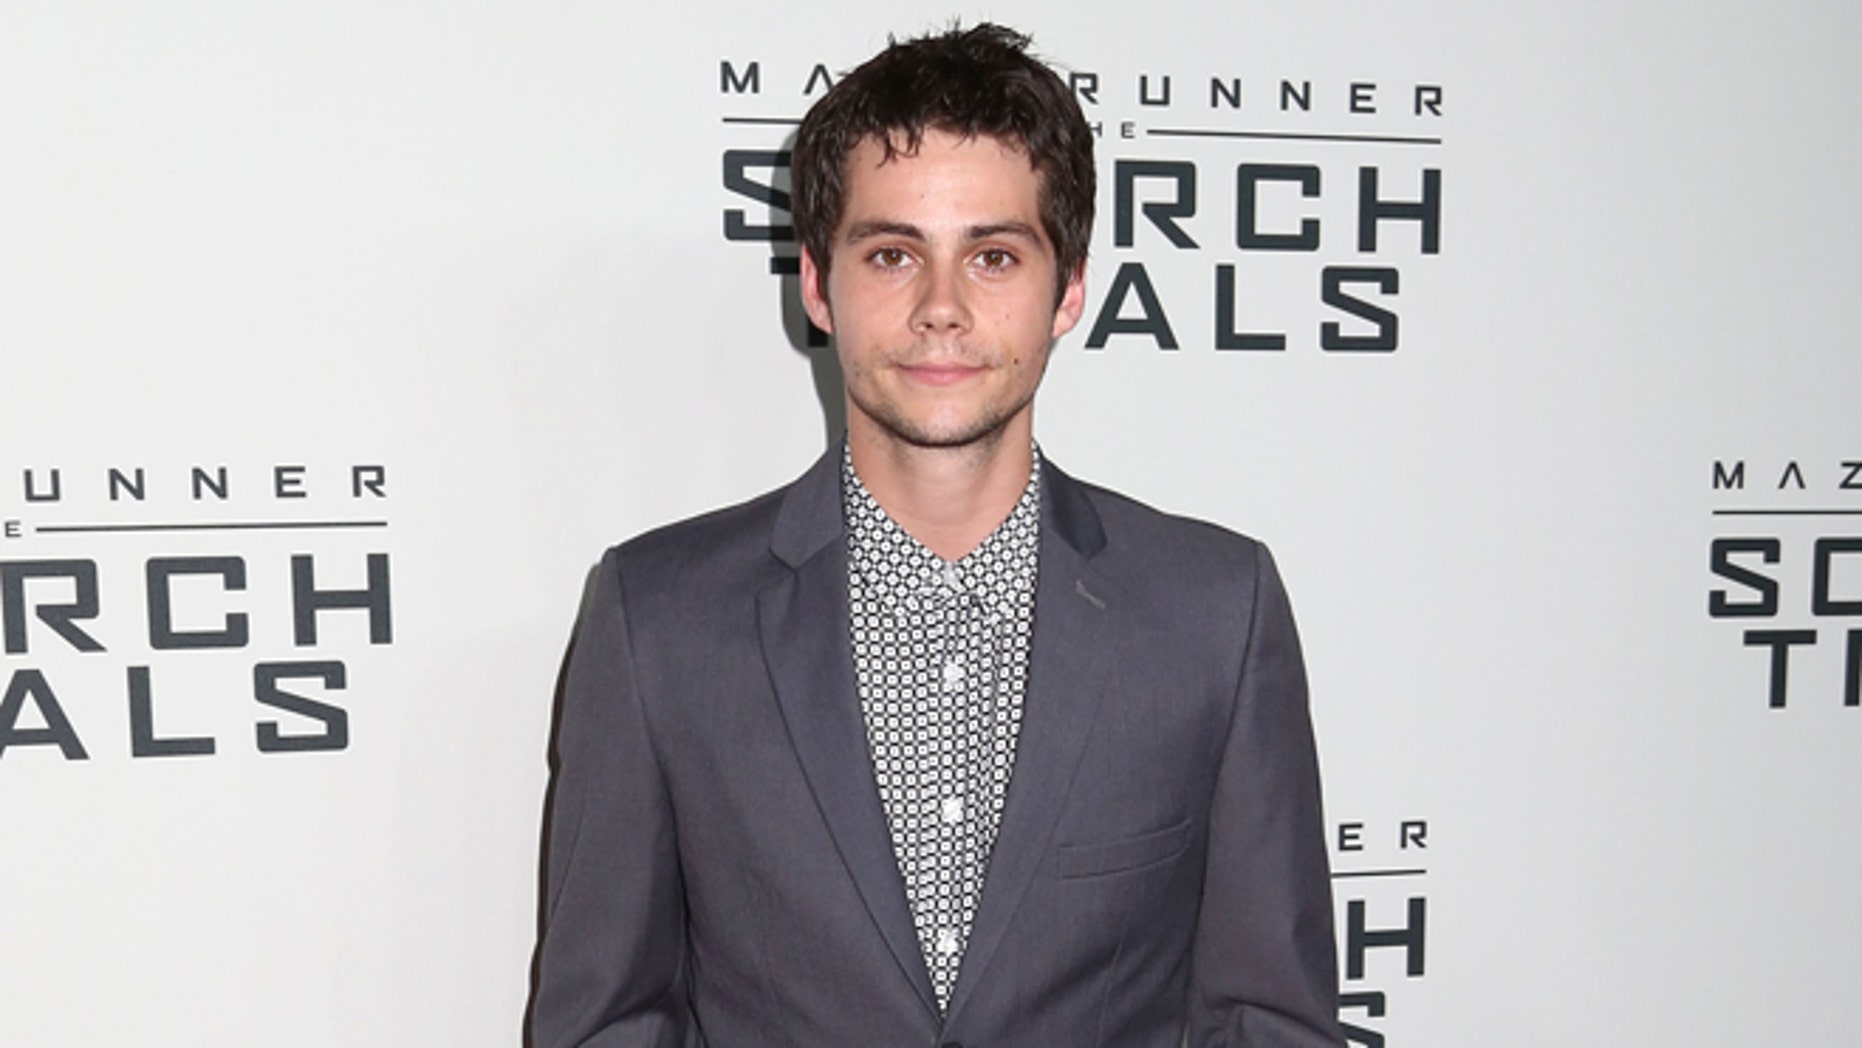 """September 15, 2015. Dylan O'Brien attends the premiere of """"Maze Runner: The Scorch Trials"""" in New York."""